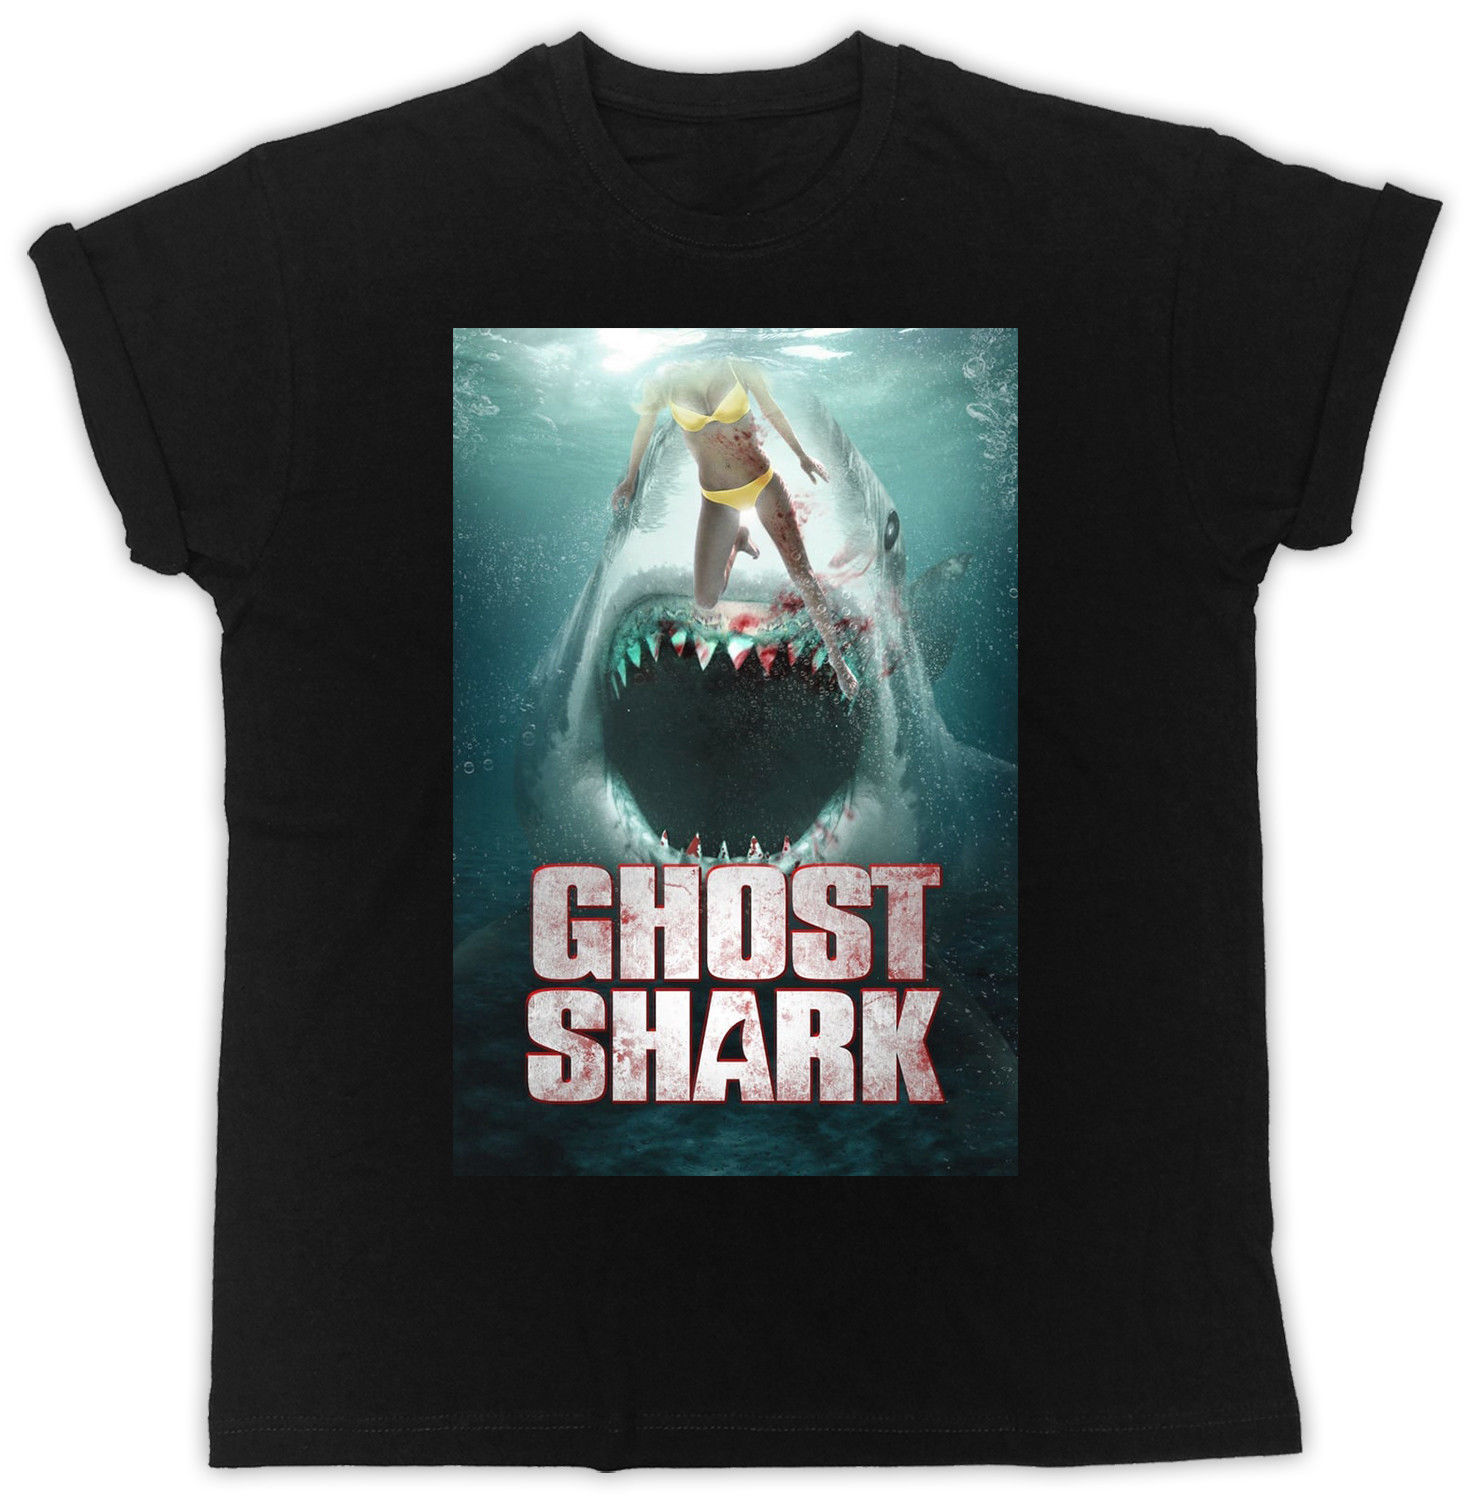 COOL FUNNY GHOST SHARK MOVIE POSTER TSHIRT UNISEX BLACK MENS T SHIRT image